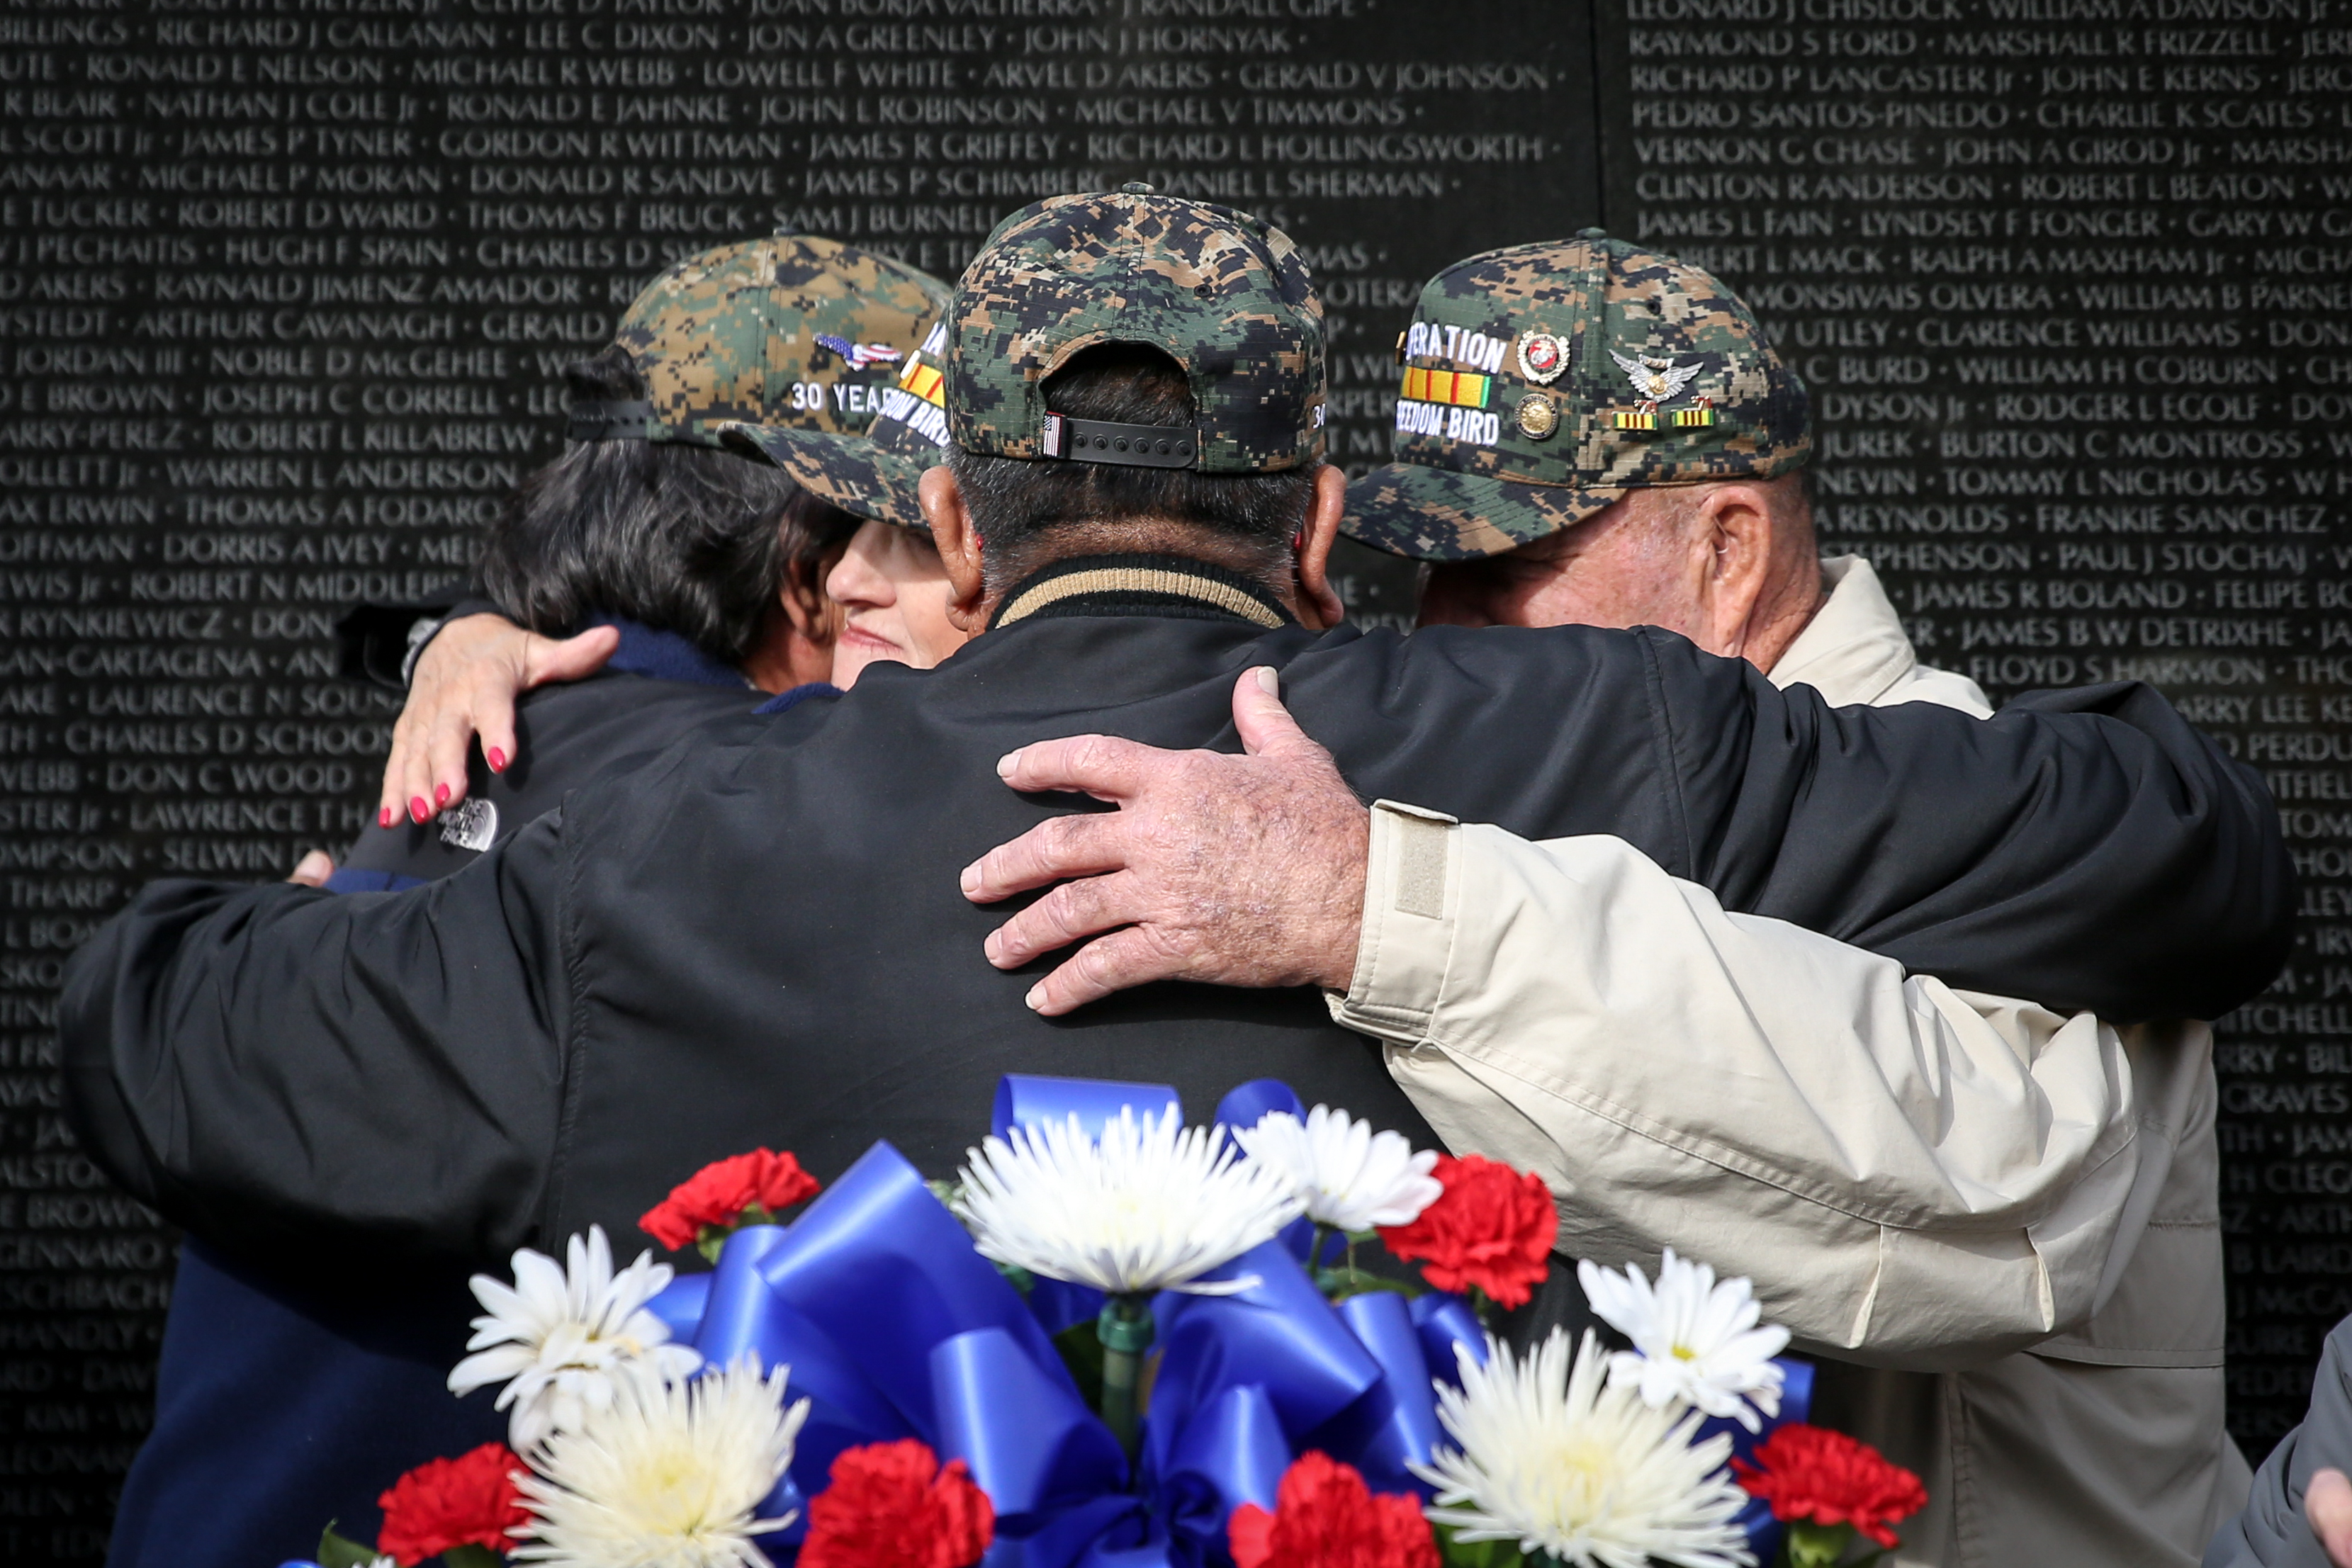 On Veterans Day, hundreds of service members and their loved ones descended upon D.C. to remember their sacrifices and the people that never made it home. Ceremonies were held at both the Vietnam Veterans Memorial and WWII Memorial, which included honoring fallen service members and remarks from public officials. (Amanda Andrade-Rhoades/DC Refined)